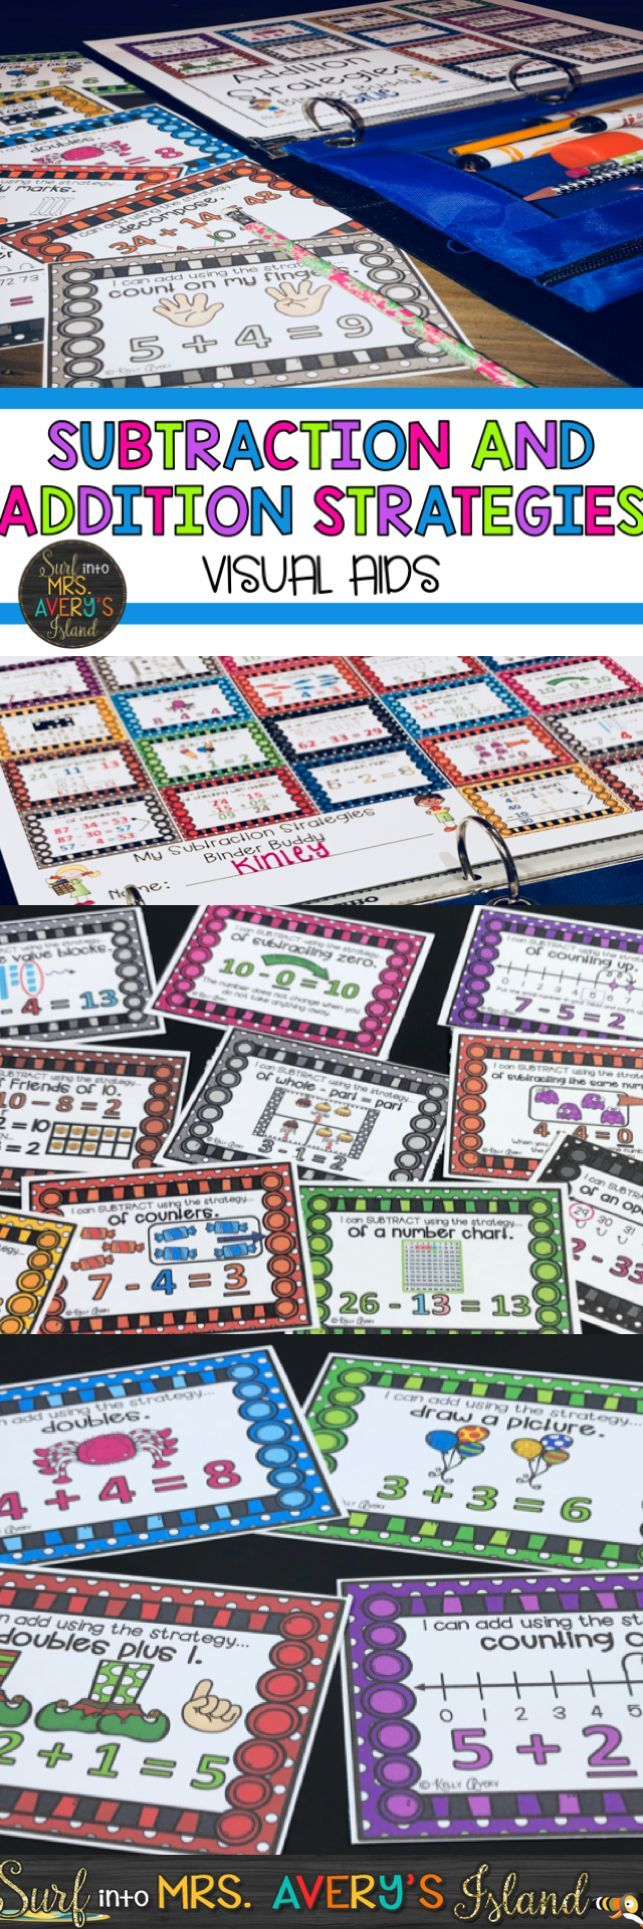 If you are seeking a variety of addition and subtraction strategies to teach your math students how to solve addition and subtraction problems, this bundle includes both of my ADDITION AND SUBTRACTION STRATEGIES and visual aids for your students to put in their math toolbox. Click the link to discover a variety of problem solving ideas, and very soon, your students will break the habit of always counting their fingers to solve addition and subtraction problems in math!